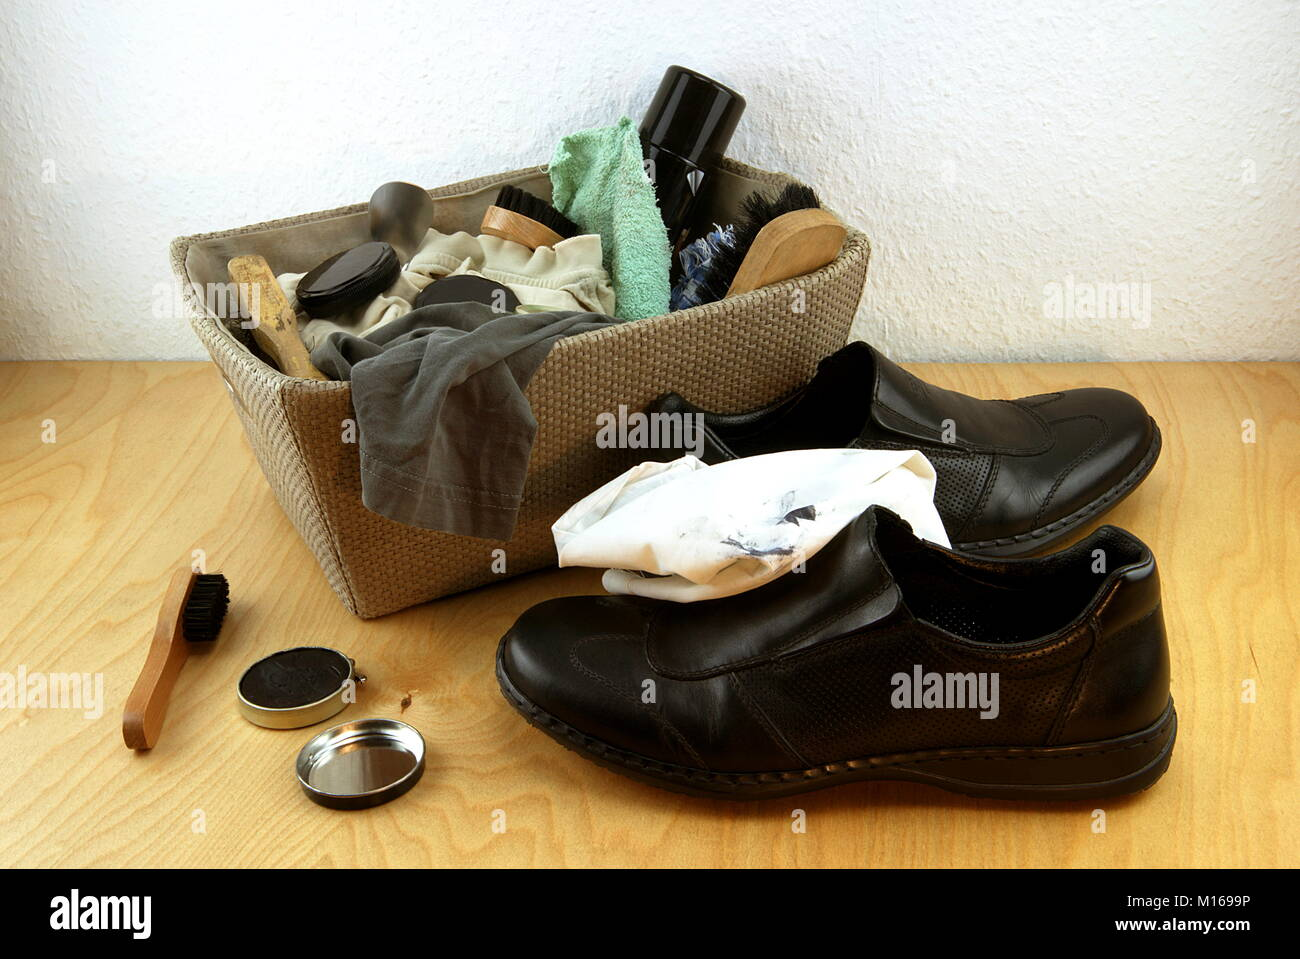 Shoe cleaning box with utensils and shoes - Stock Image